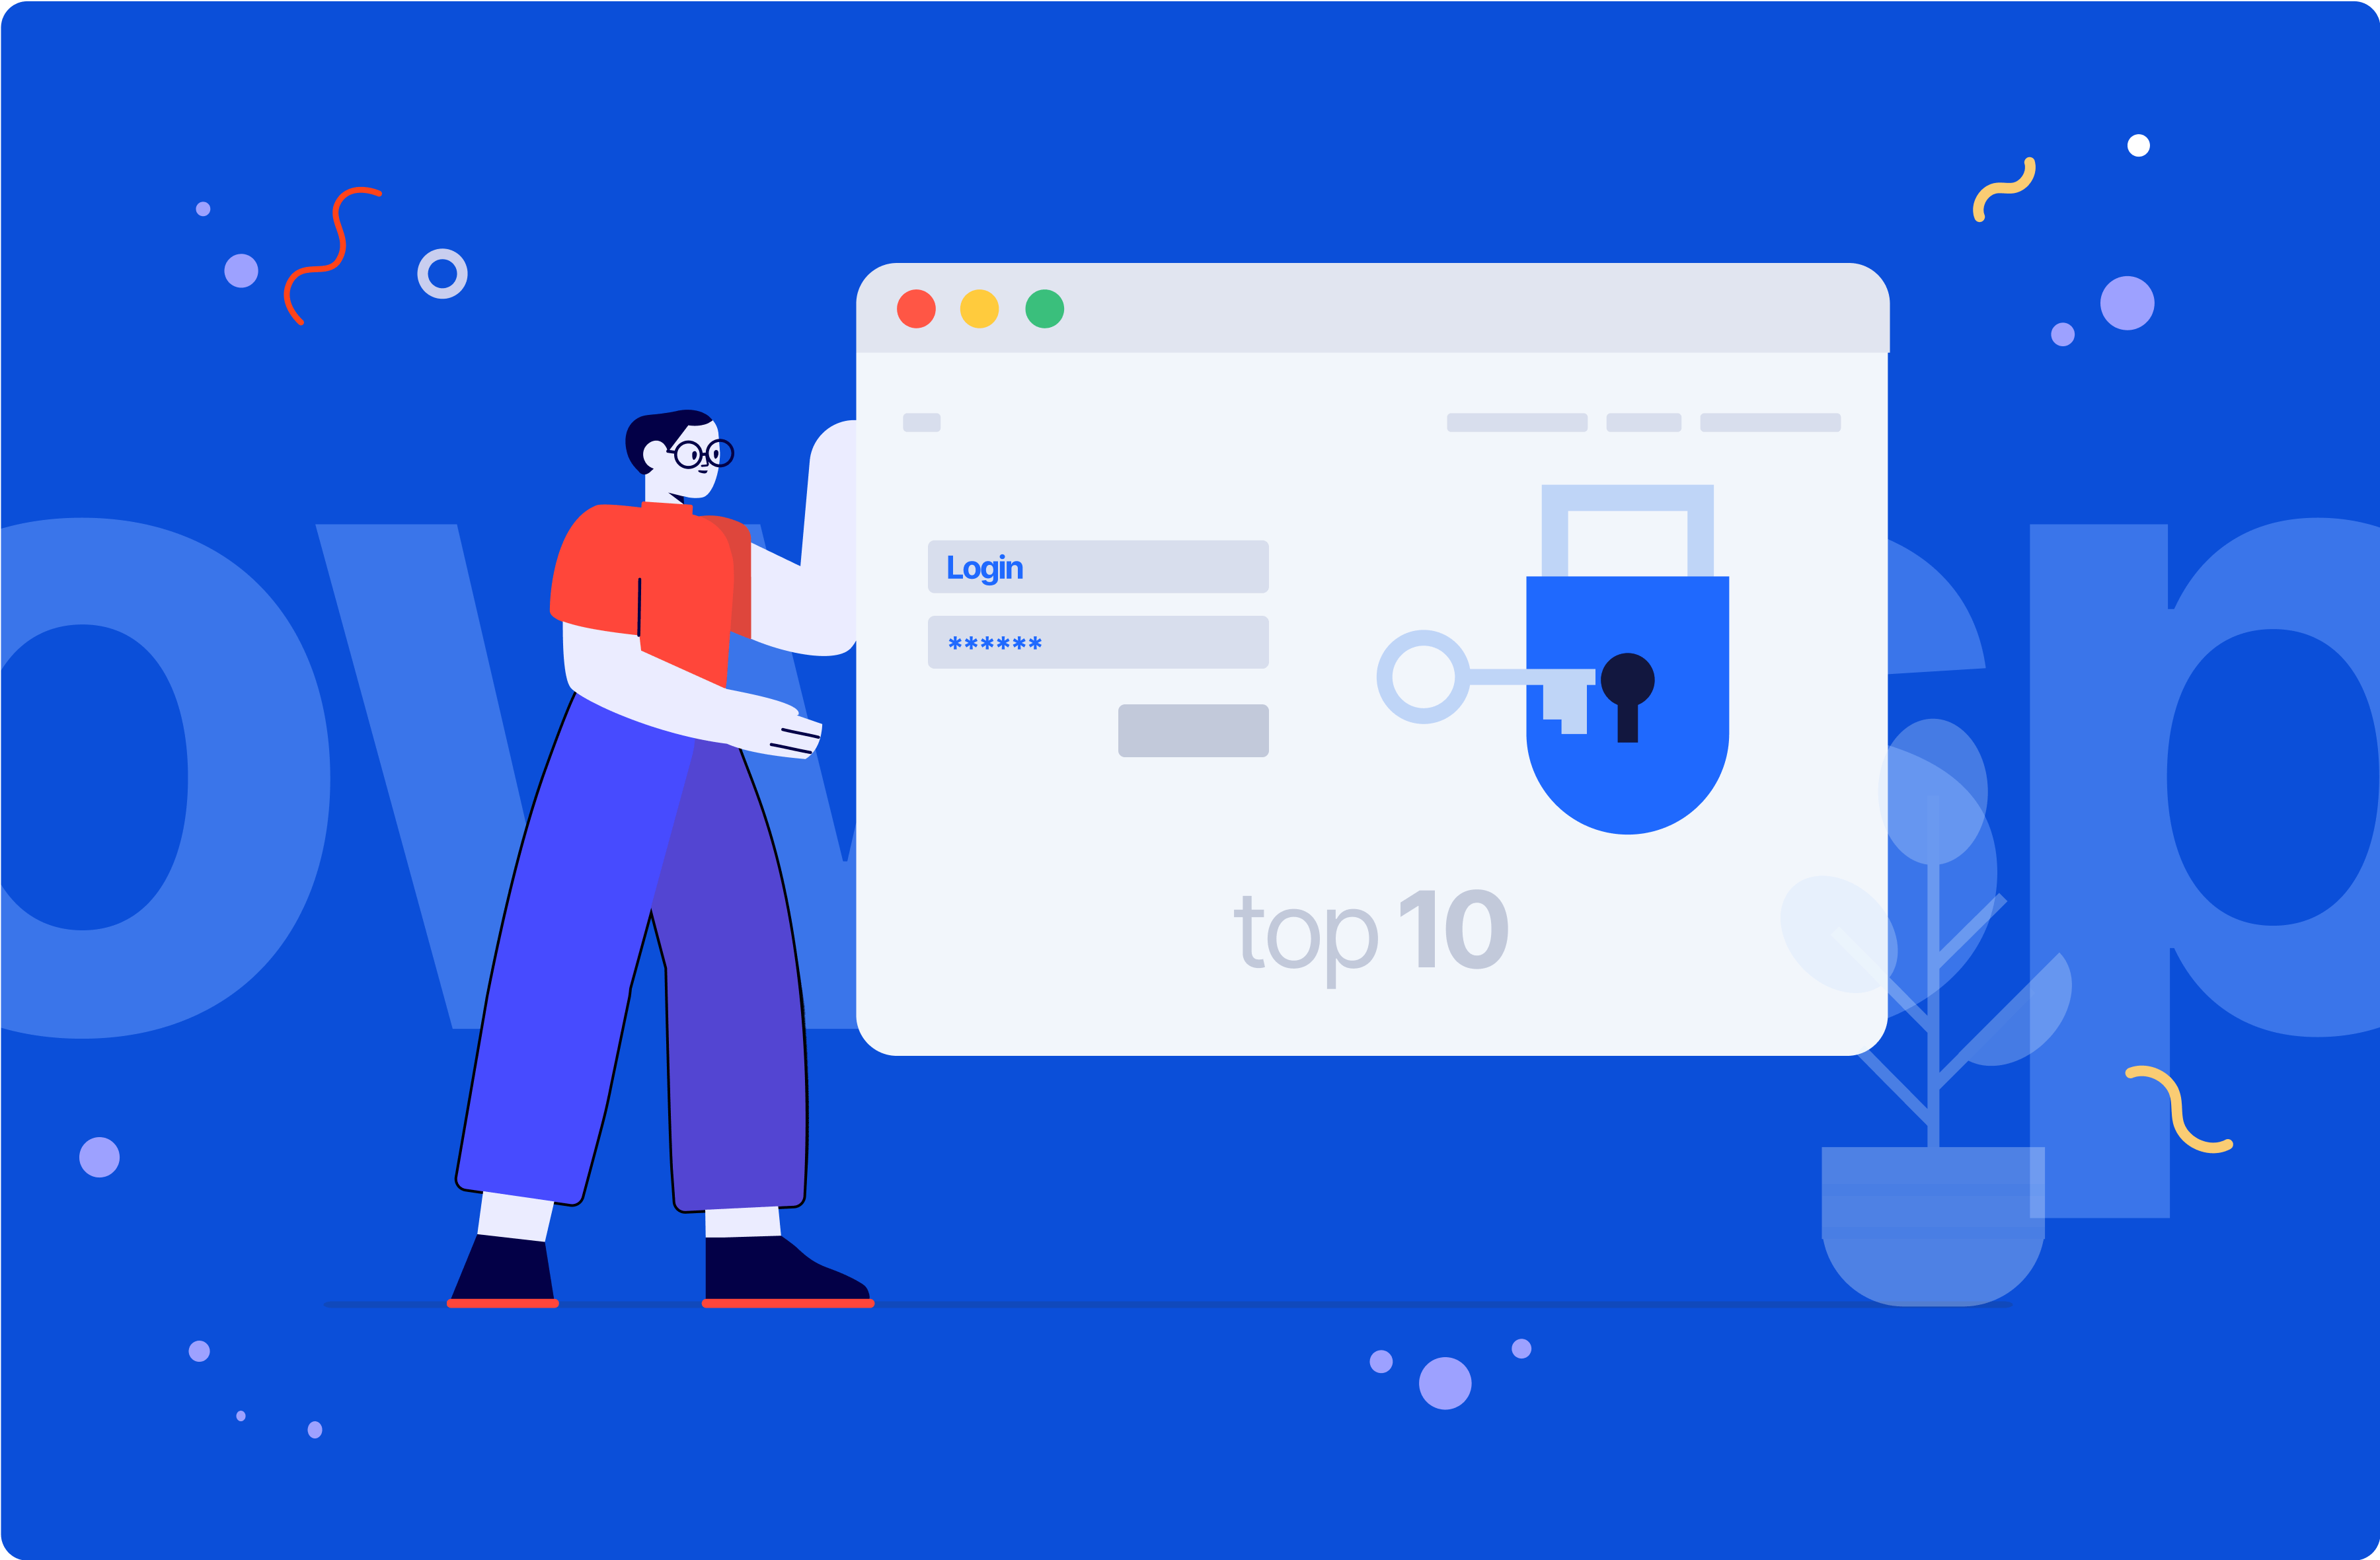 OWASP TOP 10 vulnerabilities – what's new in the world of cybersecurity? The OWASP 2020 ranking is here!